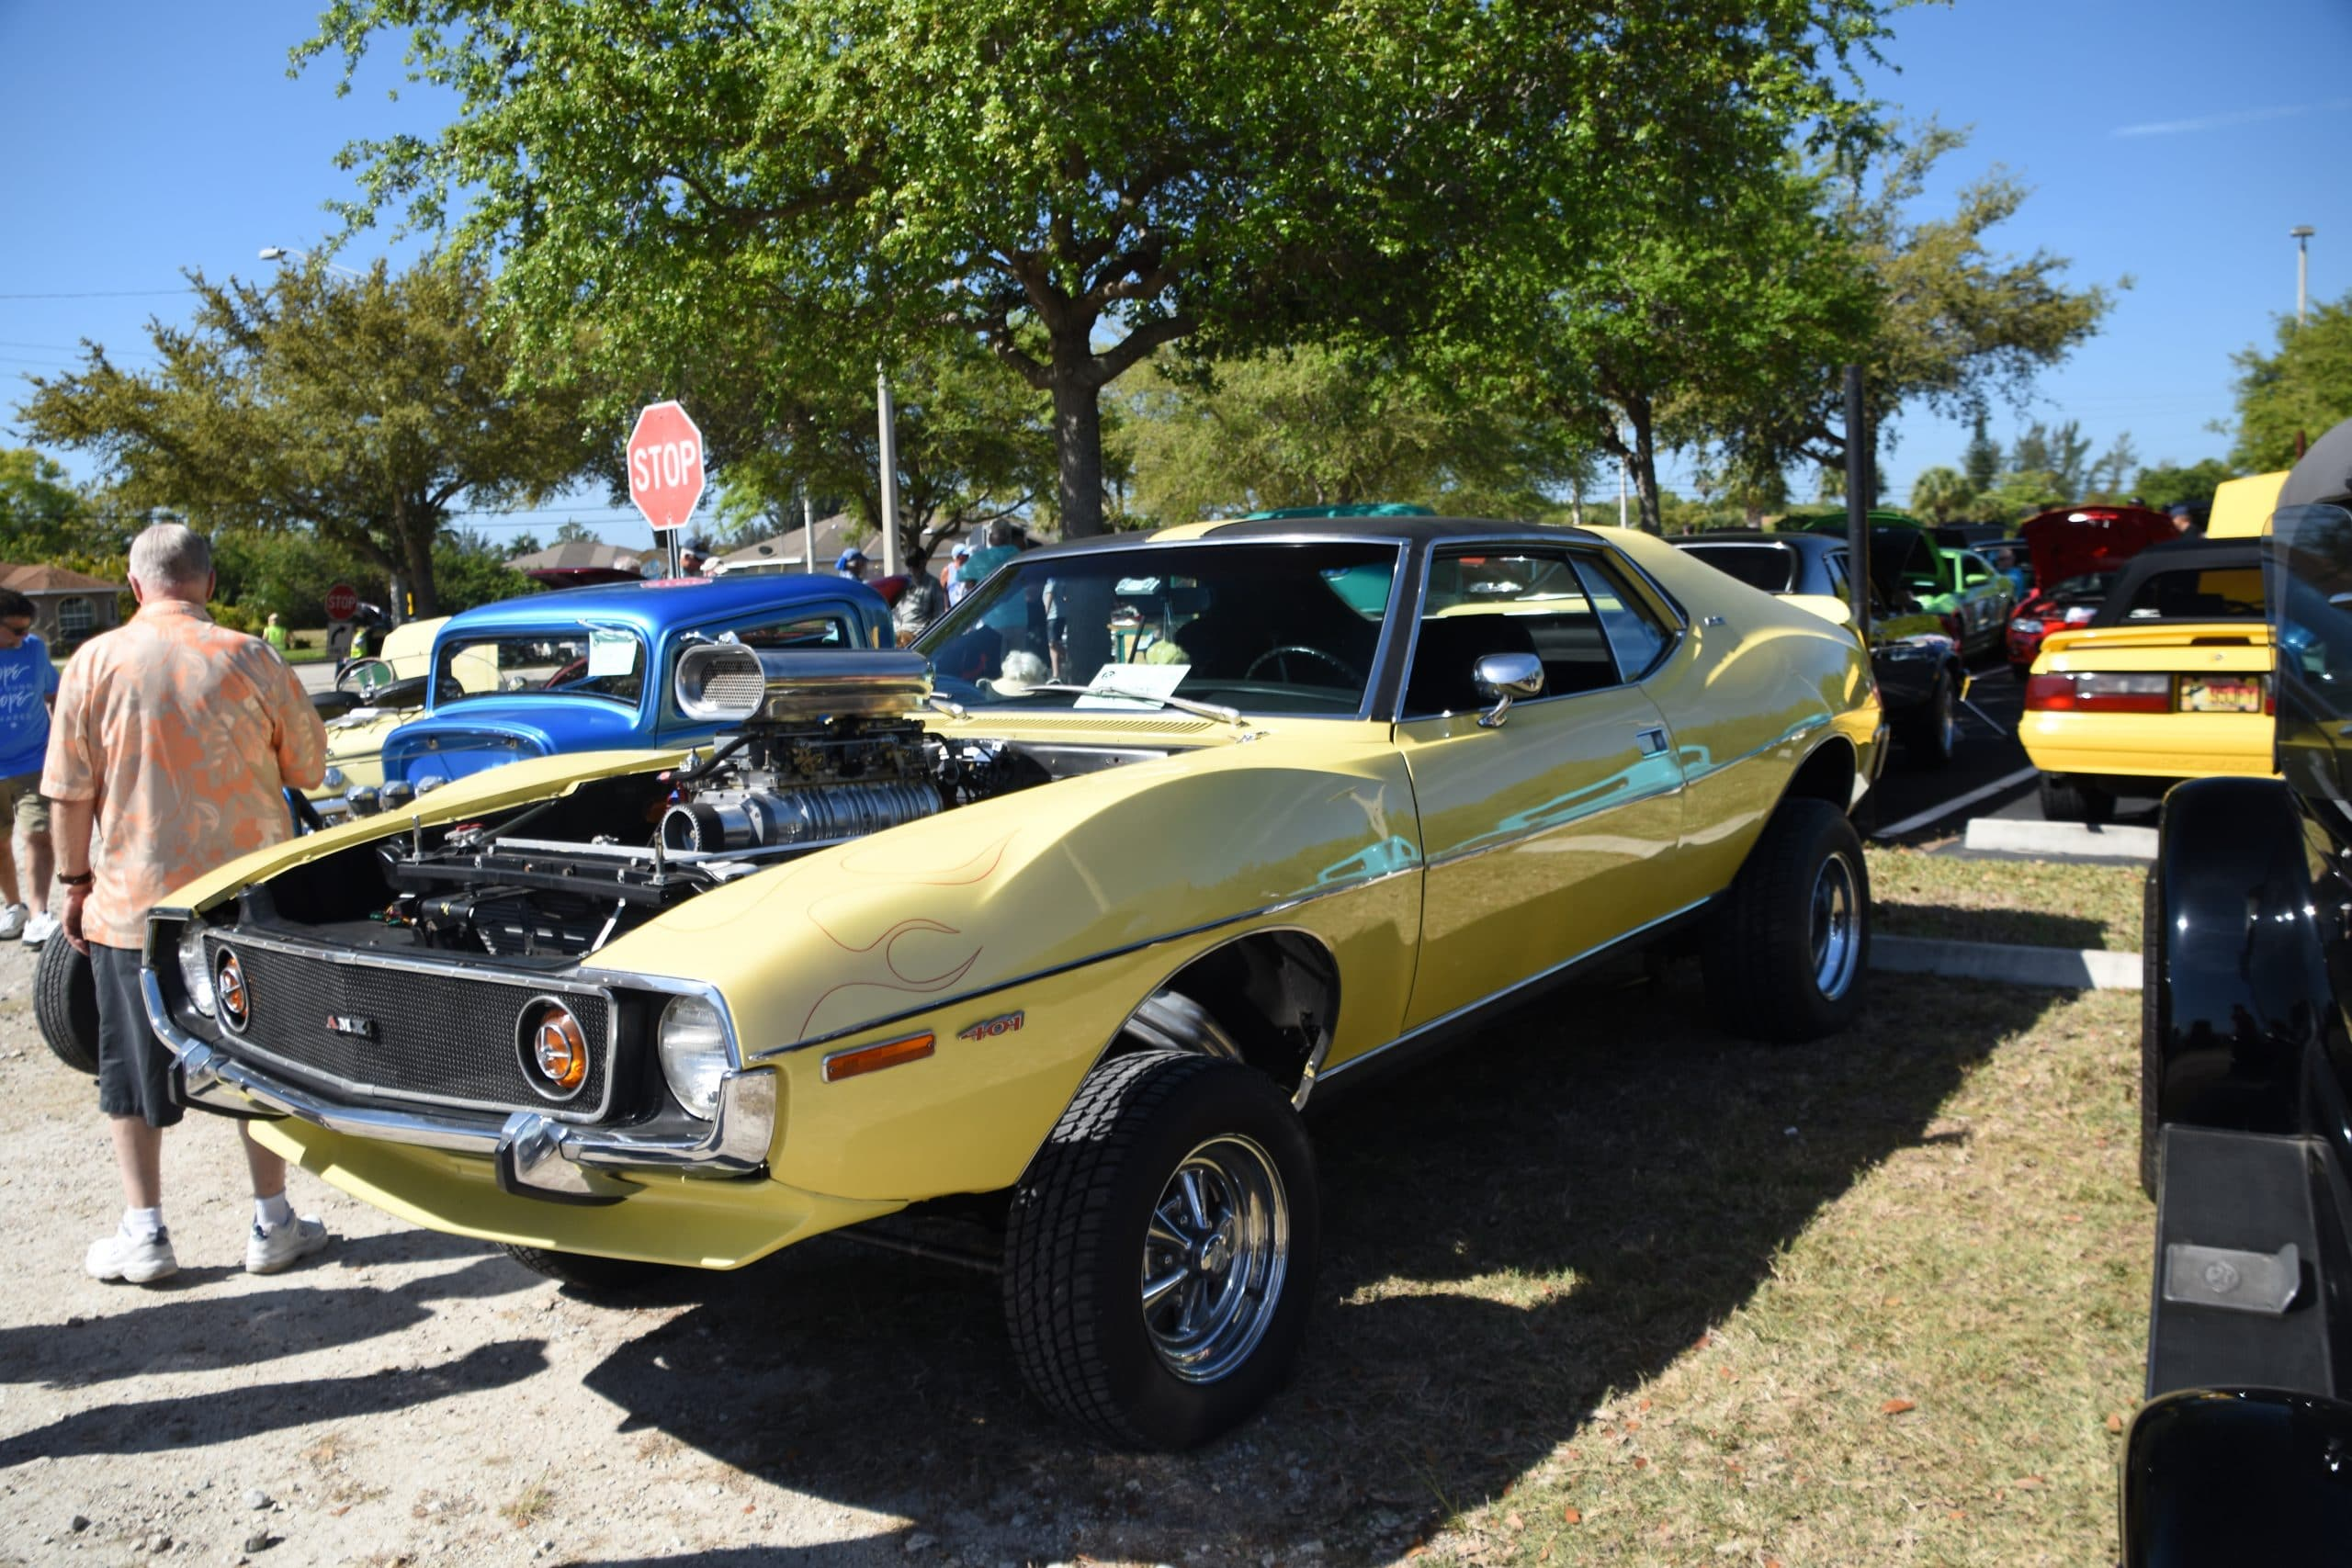 Yellow AMX car modified to be 4 wheel drive